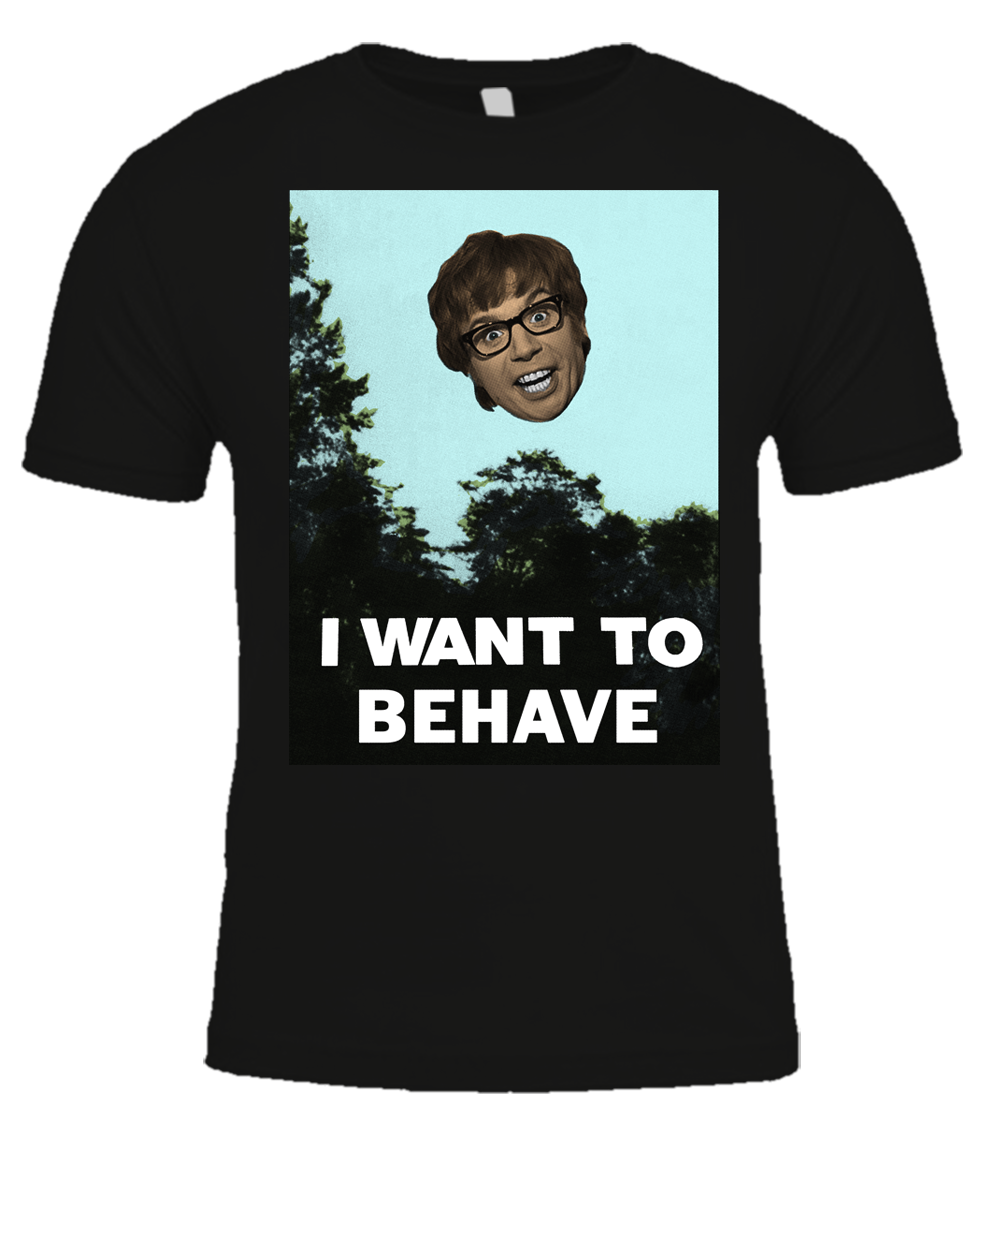 I WANT TO BEHAVE T-Shirt